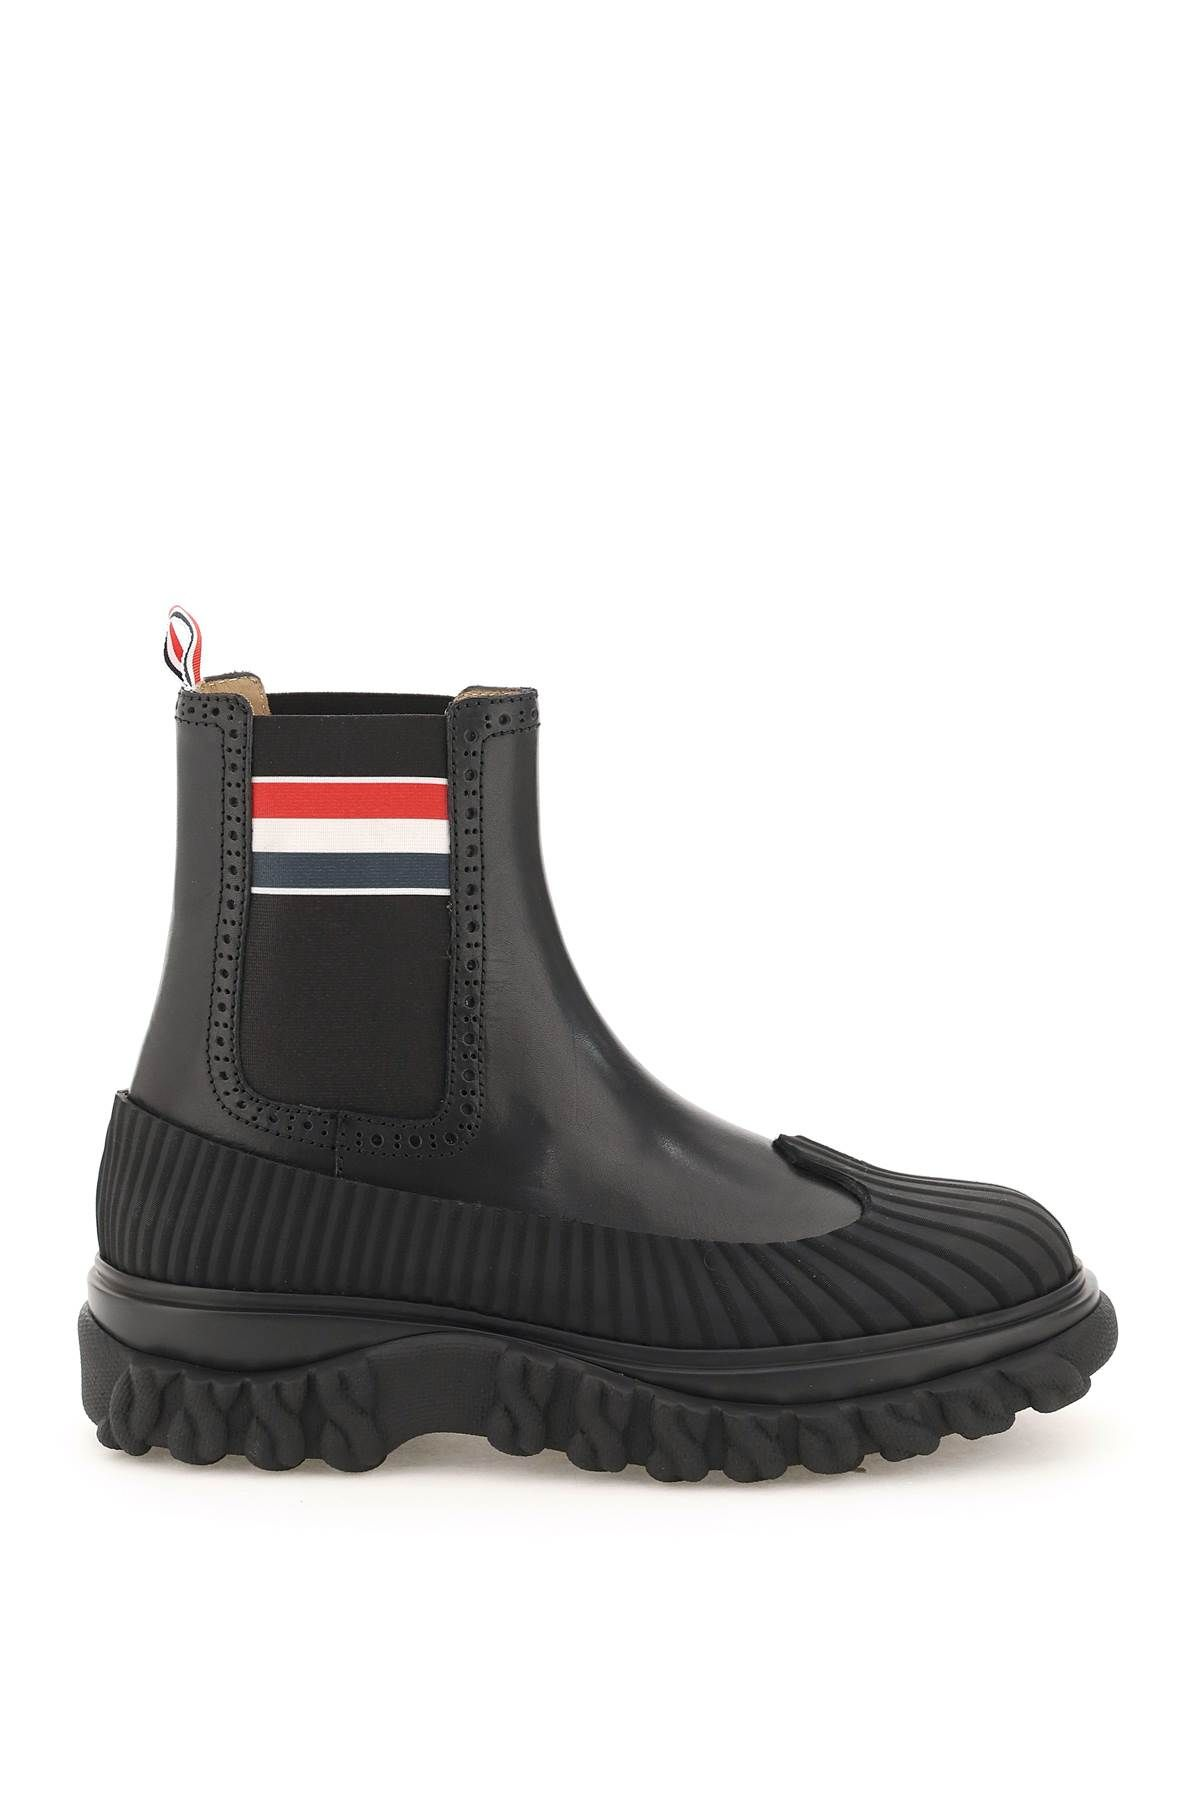 thom browne shoes men longwing duck chelsea boots